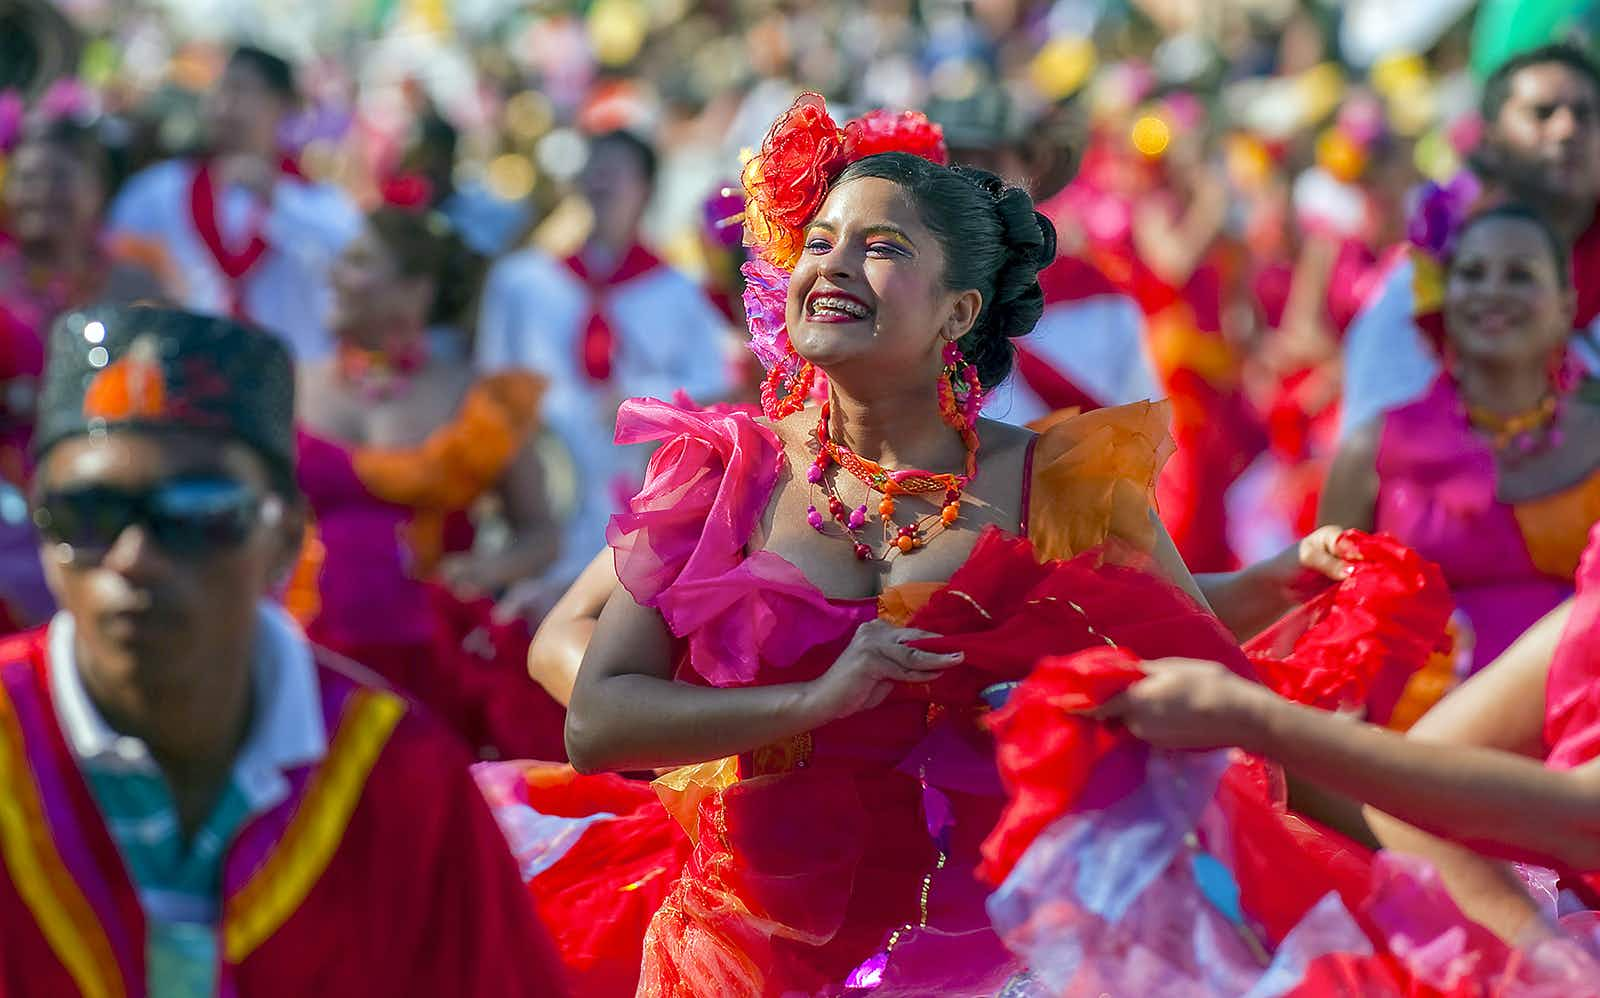 Artists dance to the soundtrack of cumbia in Barranquilla © Luis Acosta / Getty Images